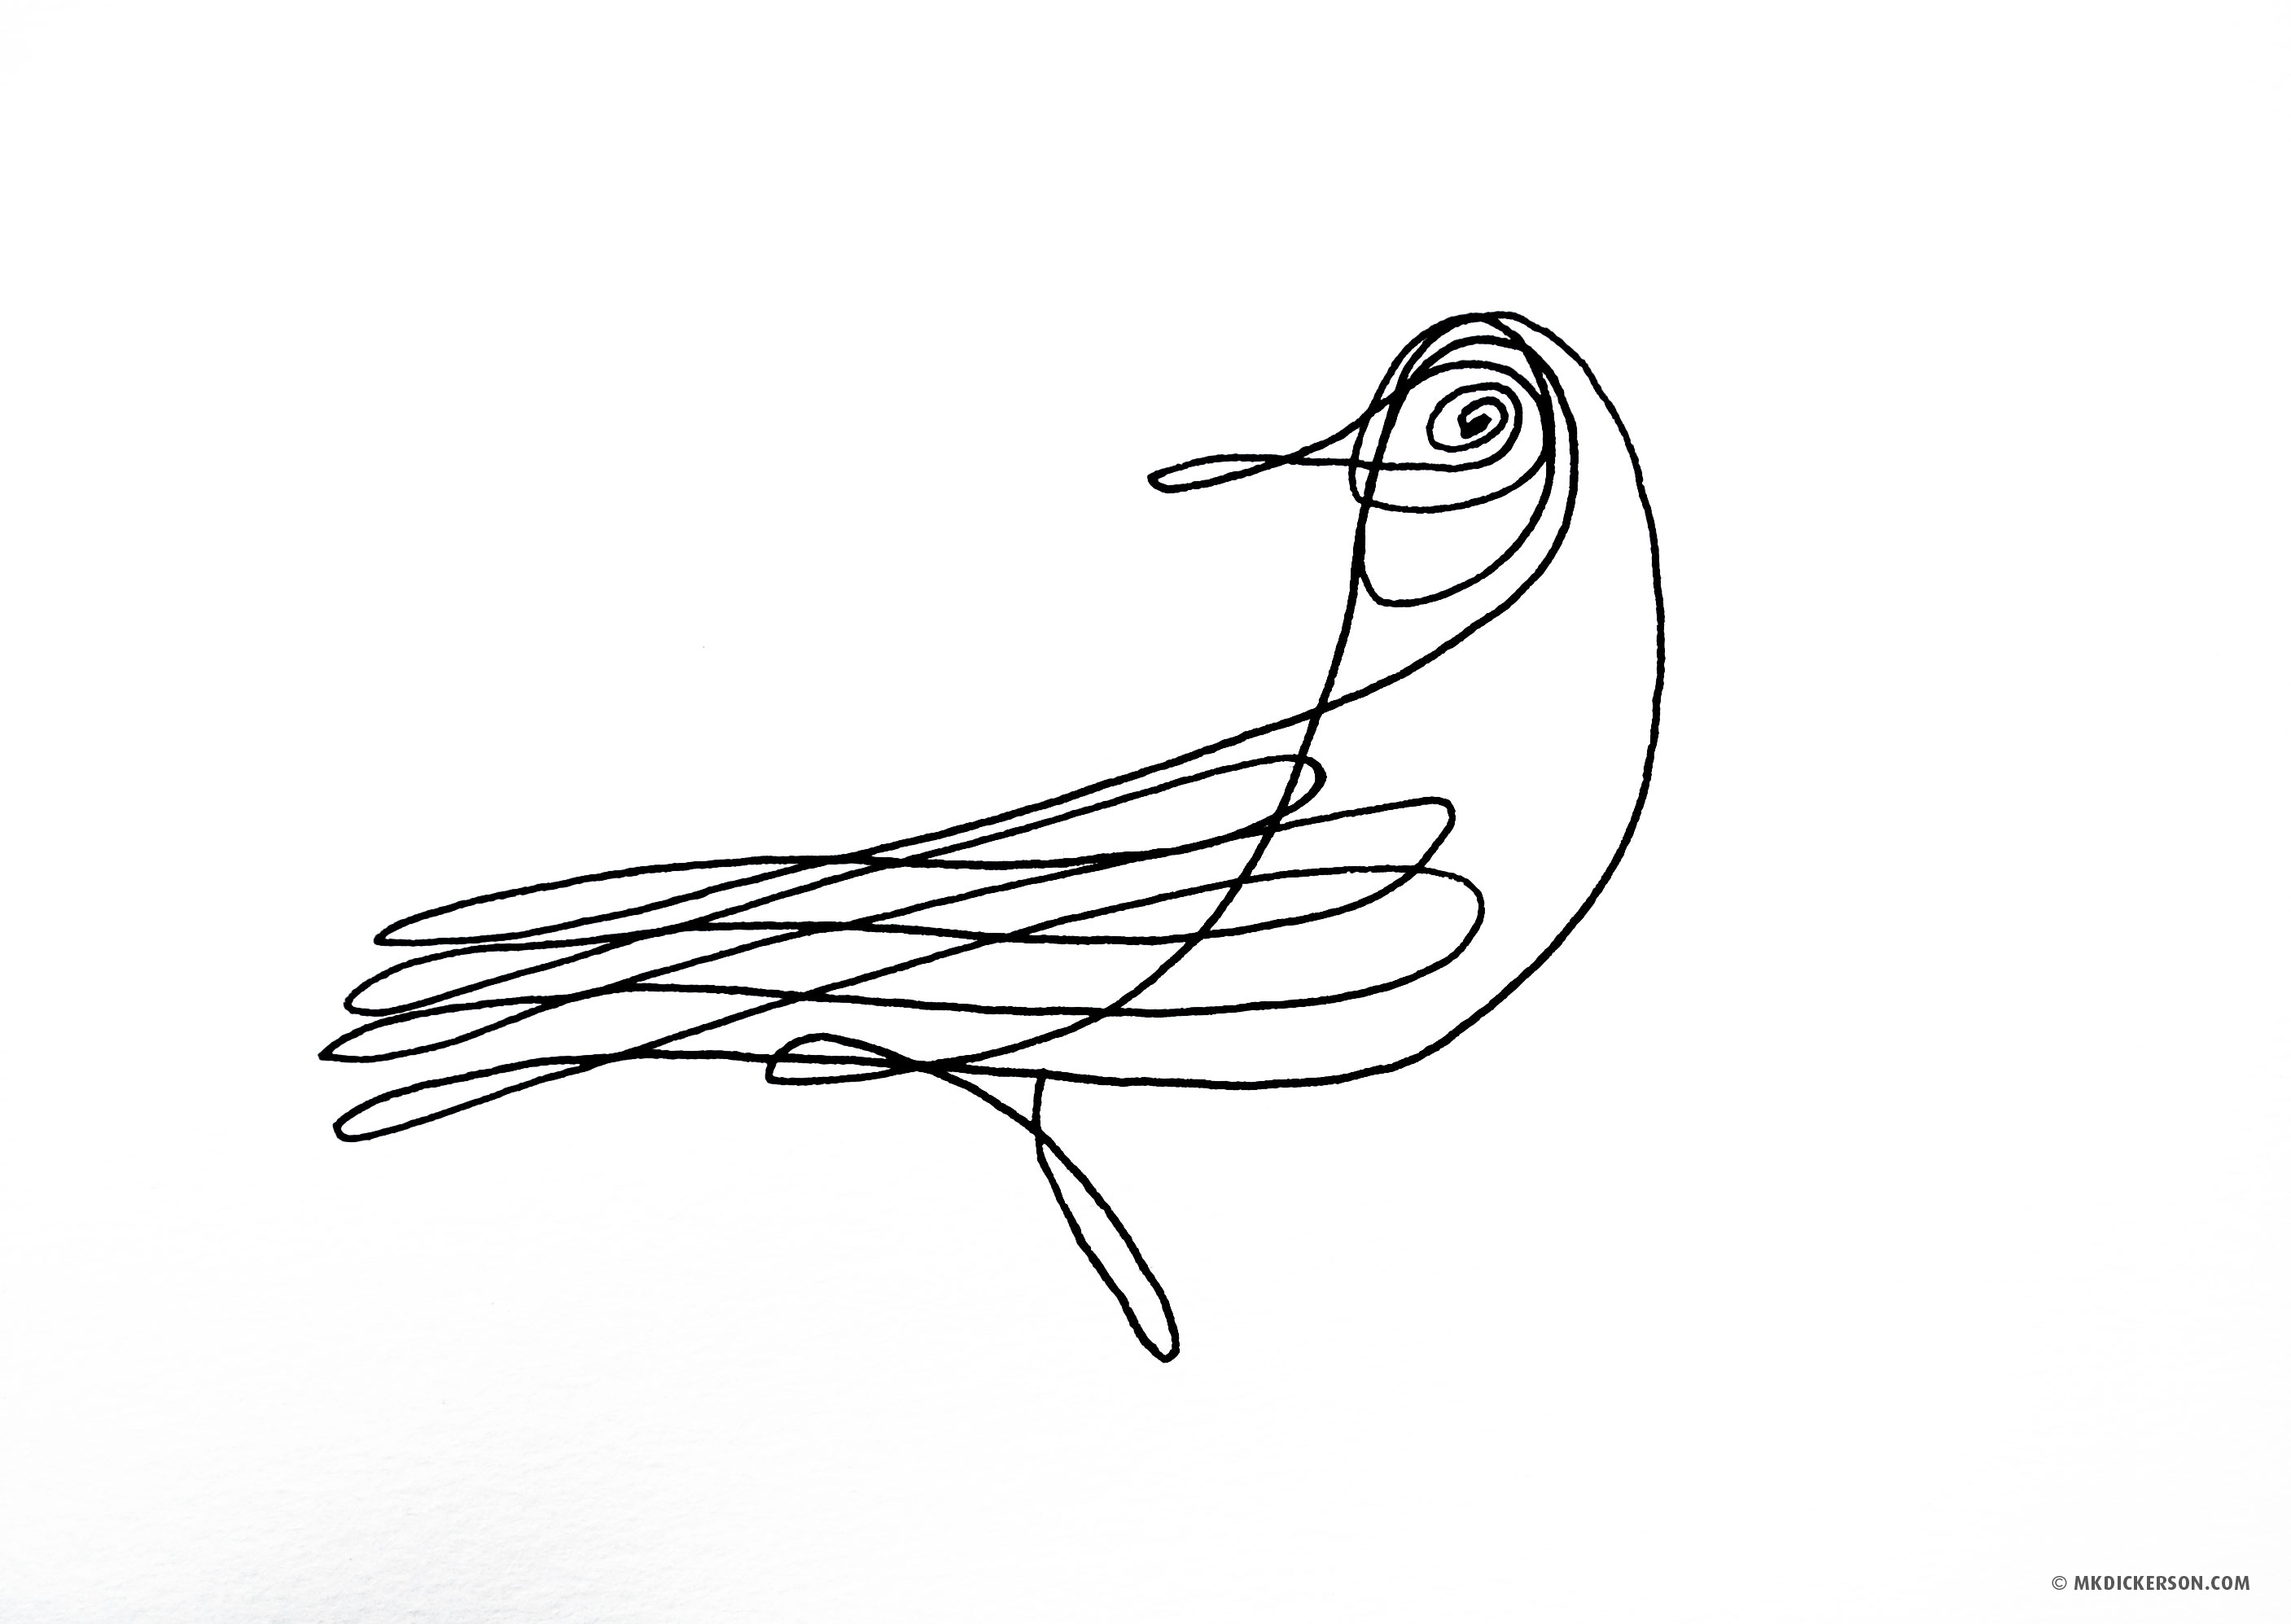 Continuous Line Drawing Easy : Visual arts bird a day art